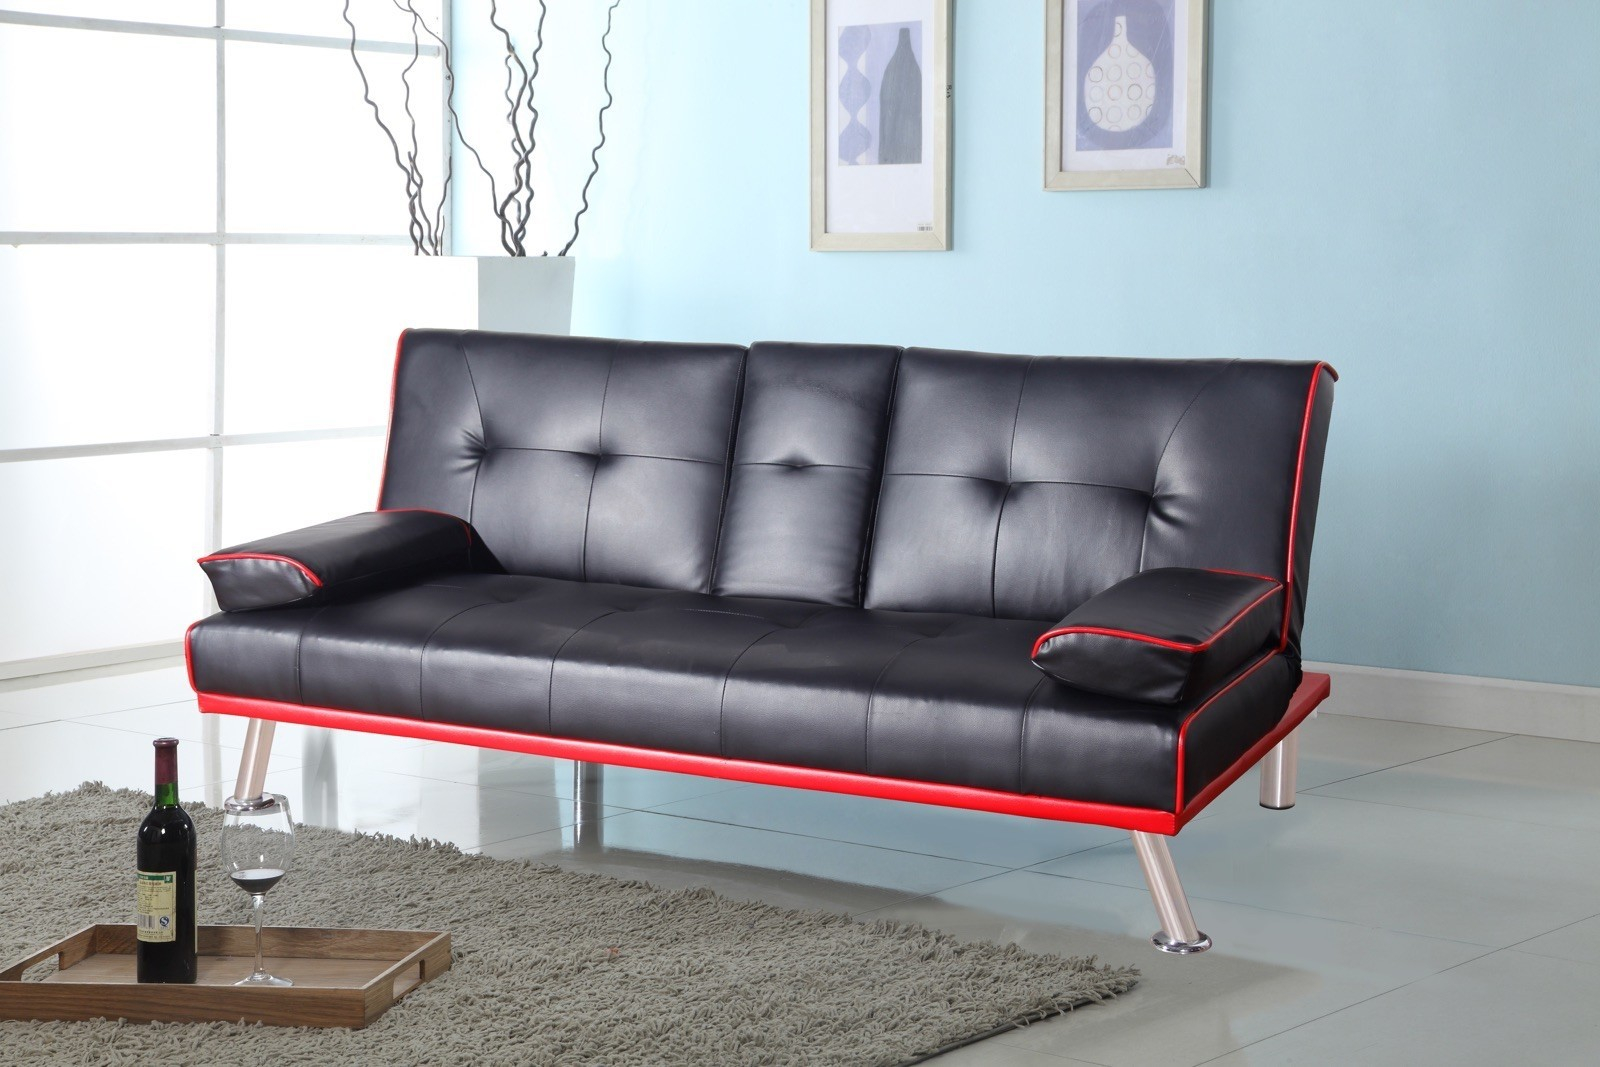 Faux Leather Sofa Bed Glasgow Uk within dimensions 1600 X 1067